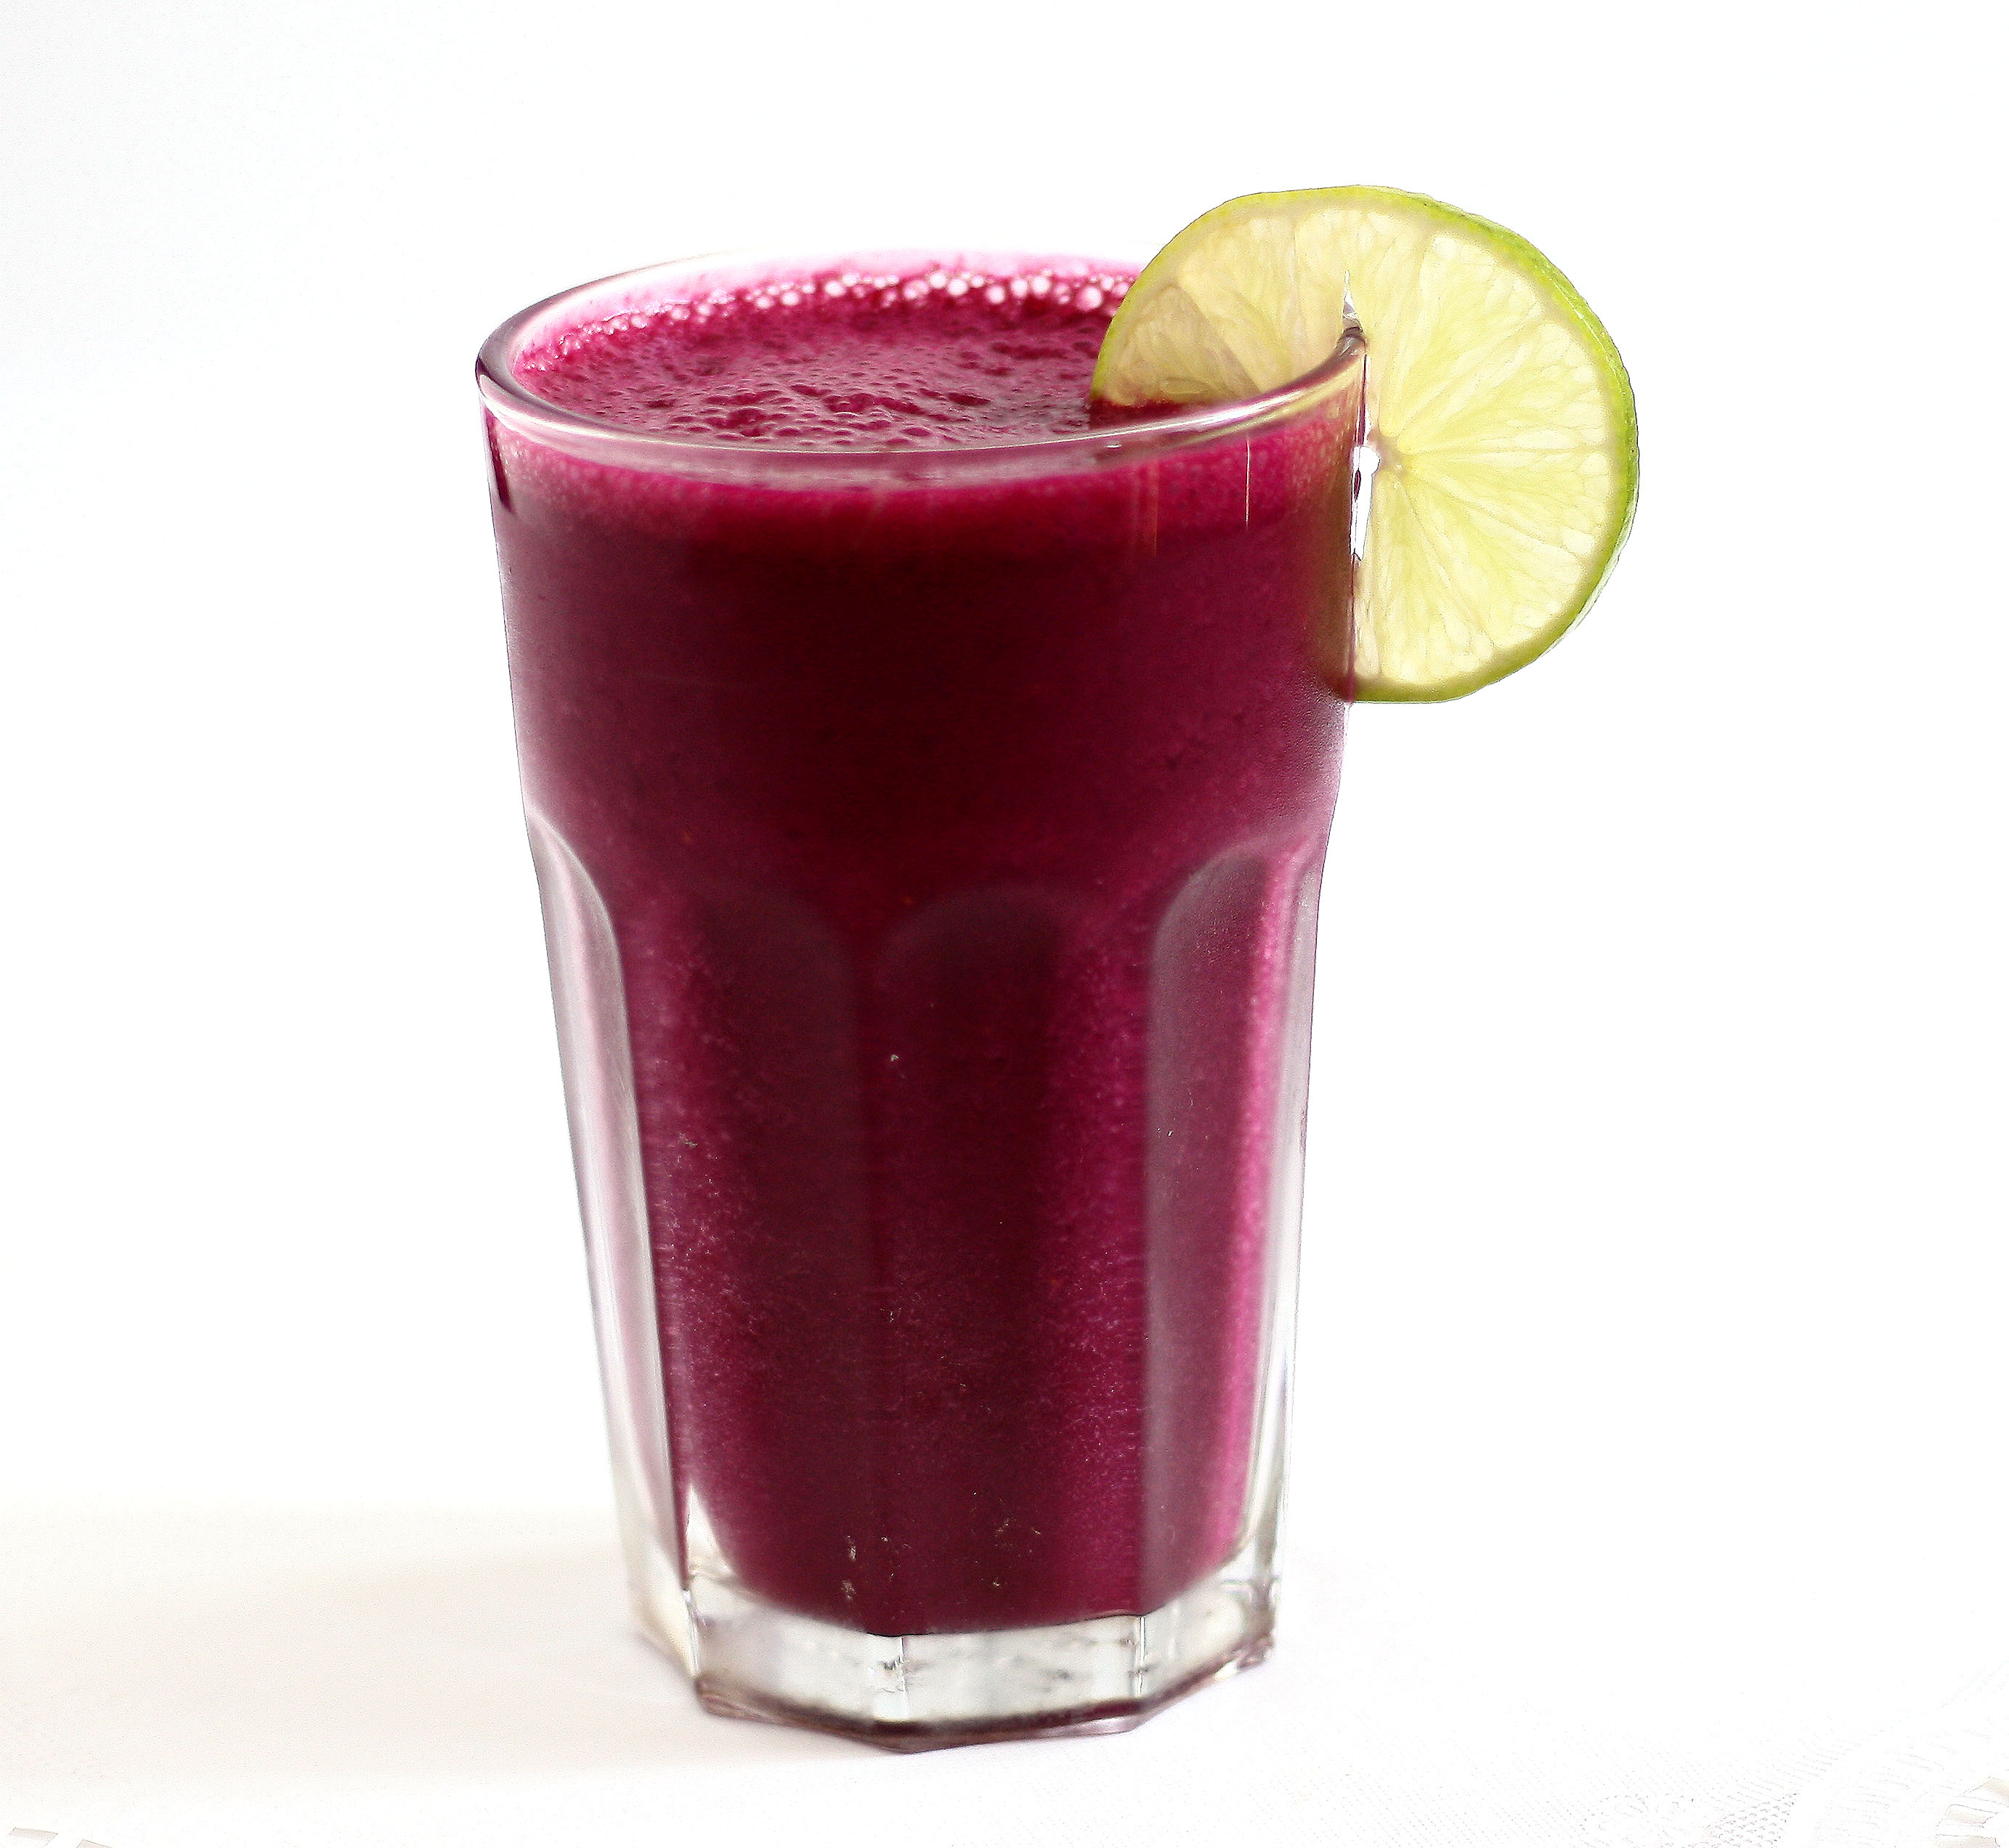 beet juice Beets are the root portion of a vegetable the bulbous root is eaten, but the leaves of beets may also be eaten raw, steamed, or juiced there are both benefits and drawbacks to consuming beet juice after talking to your doctor about whether beet juice can contribute to your optimal health, you may opt to make it a part of.